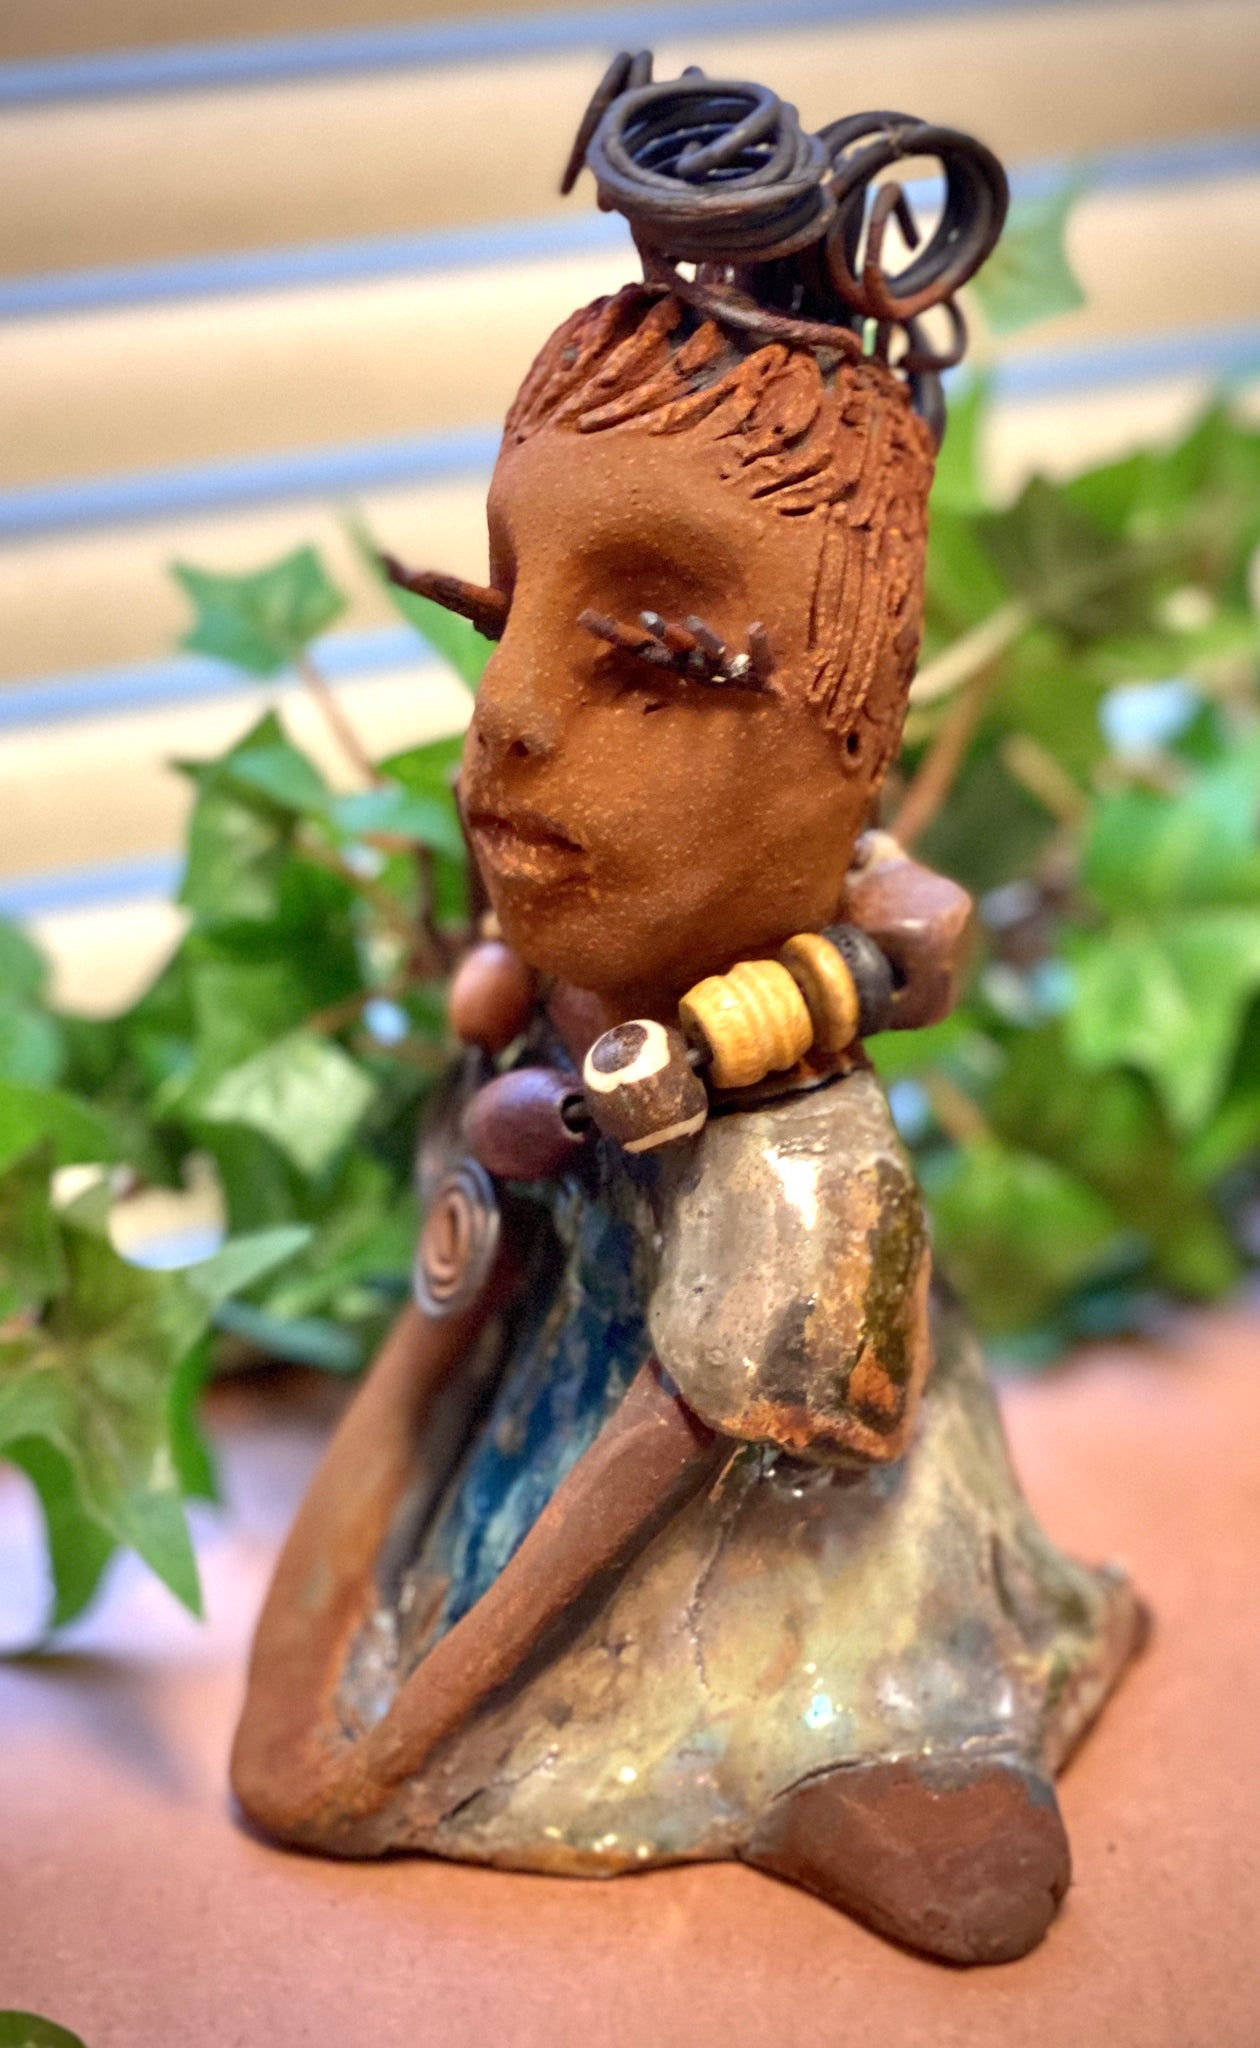 "Janet stands 6"" x 4"" x 4"" and weighs 14 ozs. Janet has a honey brown complexion with wire hair. She wears long lashes and has a alligator green metallic dress. She wears an awesome wood bead necklace. Janet has her long loving arms around her knees as she rest and waits."